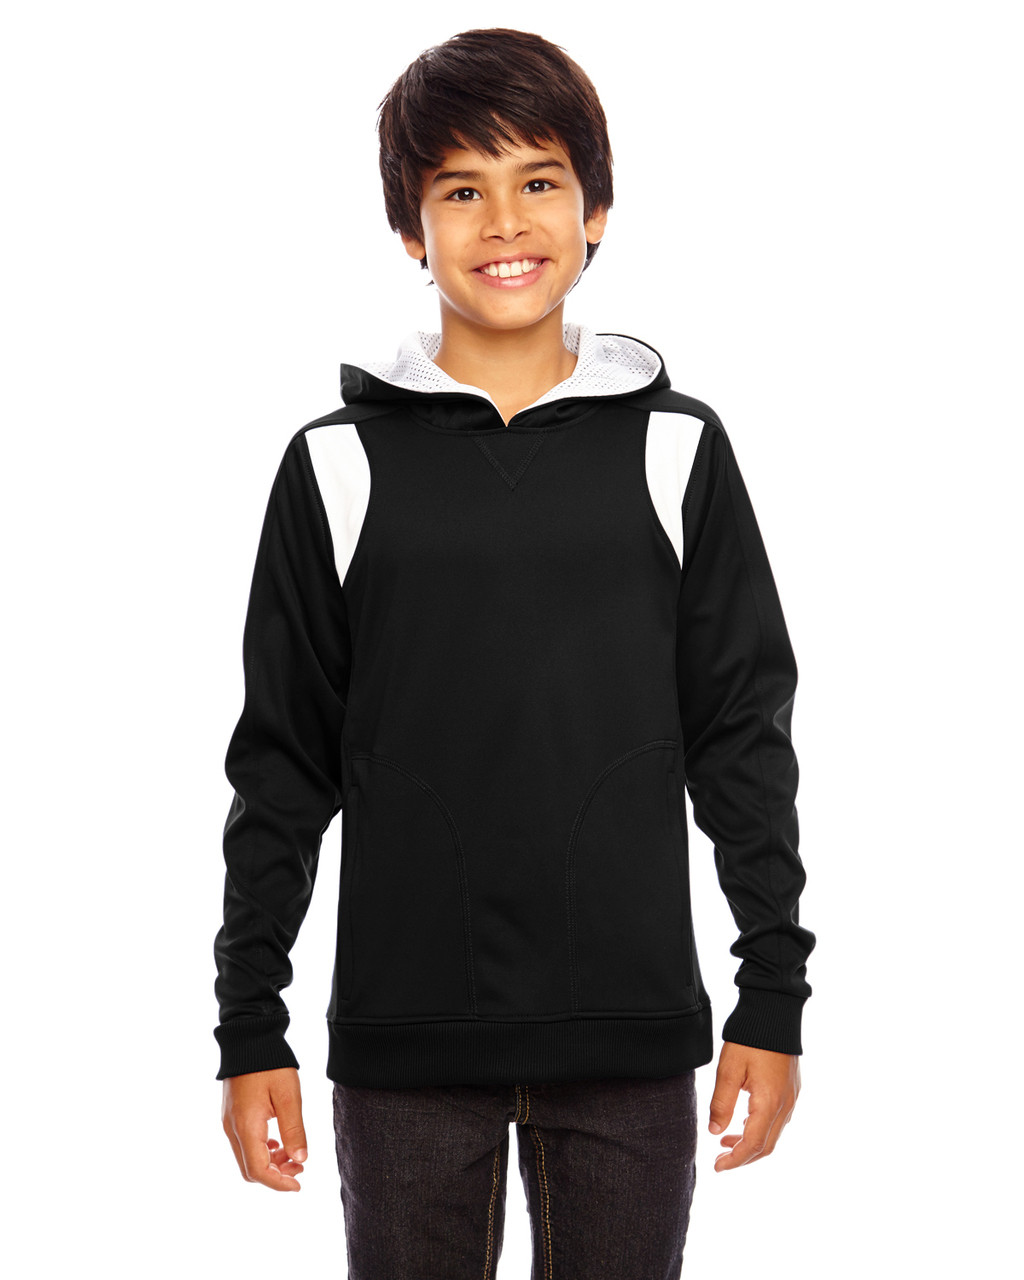 Black/White - TT30Y Team 365 Youth Elite Performance Hoodie | BlankClothing.ca